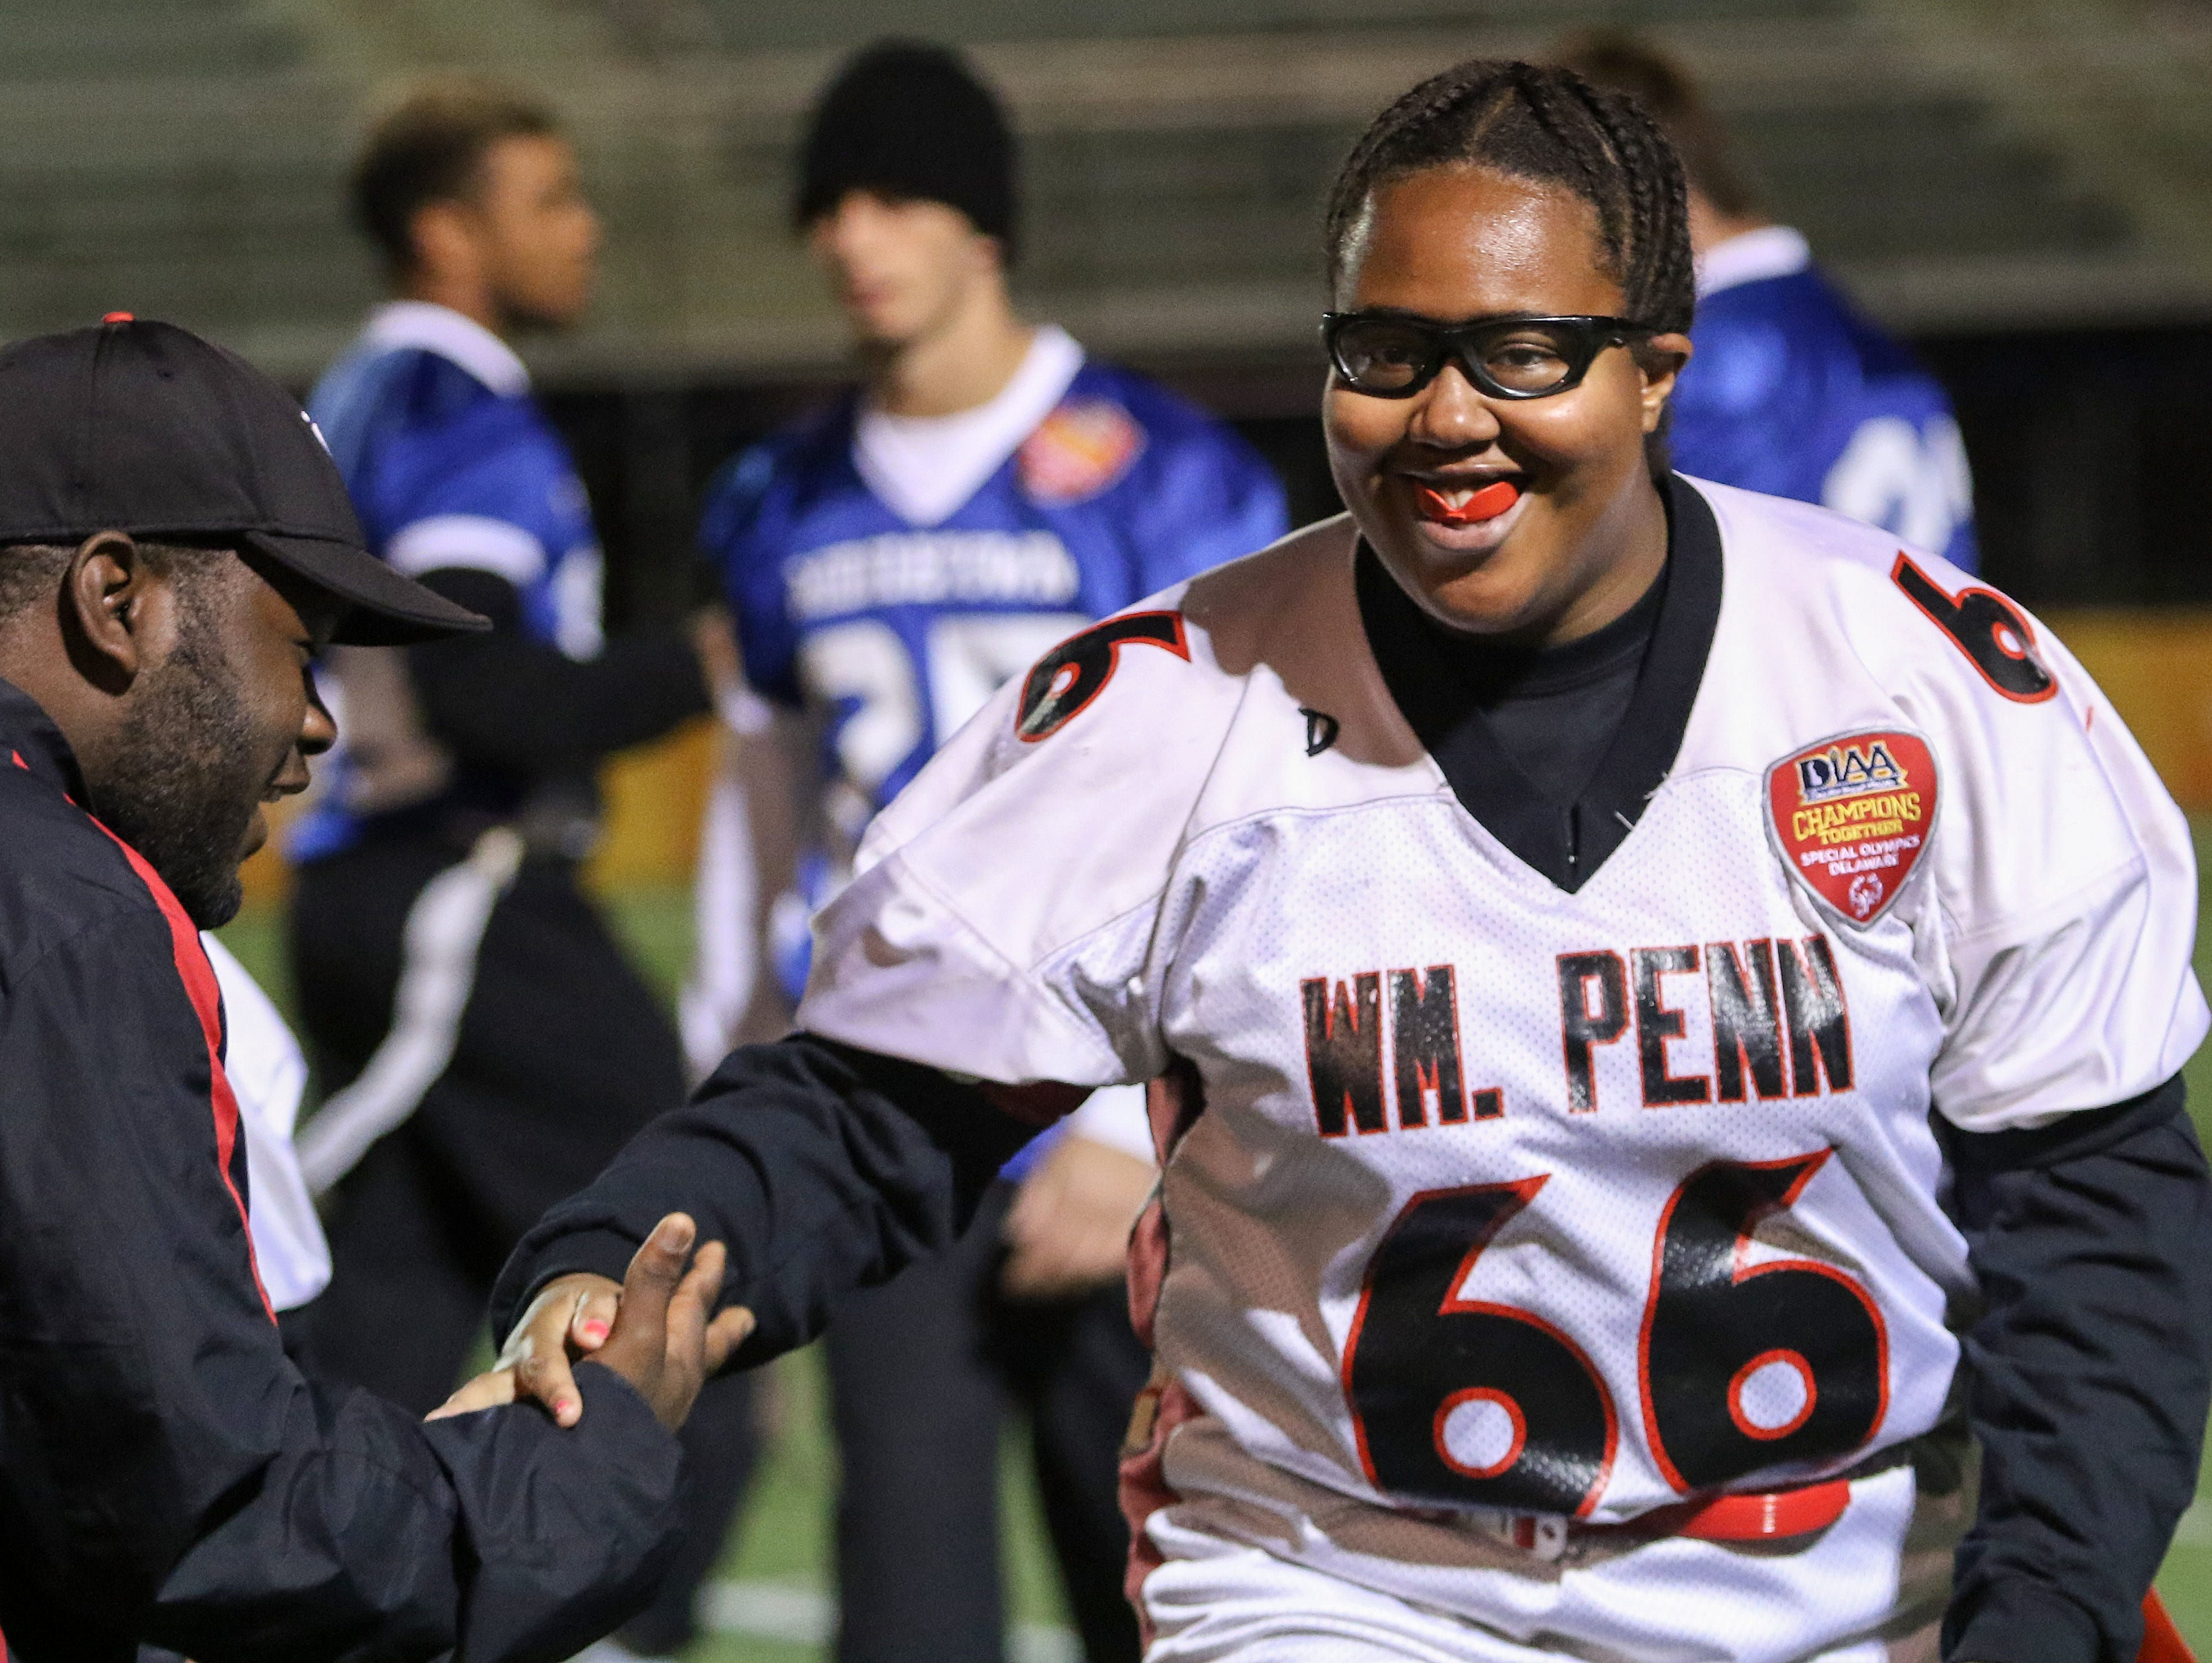 Danielle Alphonse, of the William Penn Unified Football team, gets a five from assistant coach Terrence Walker after she scored a touchdown during a DIAA Unified Football game.